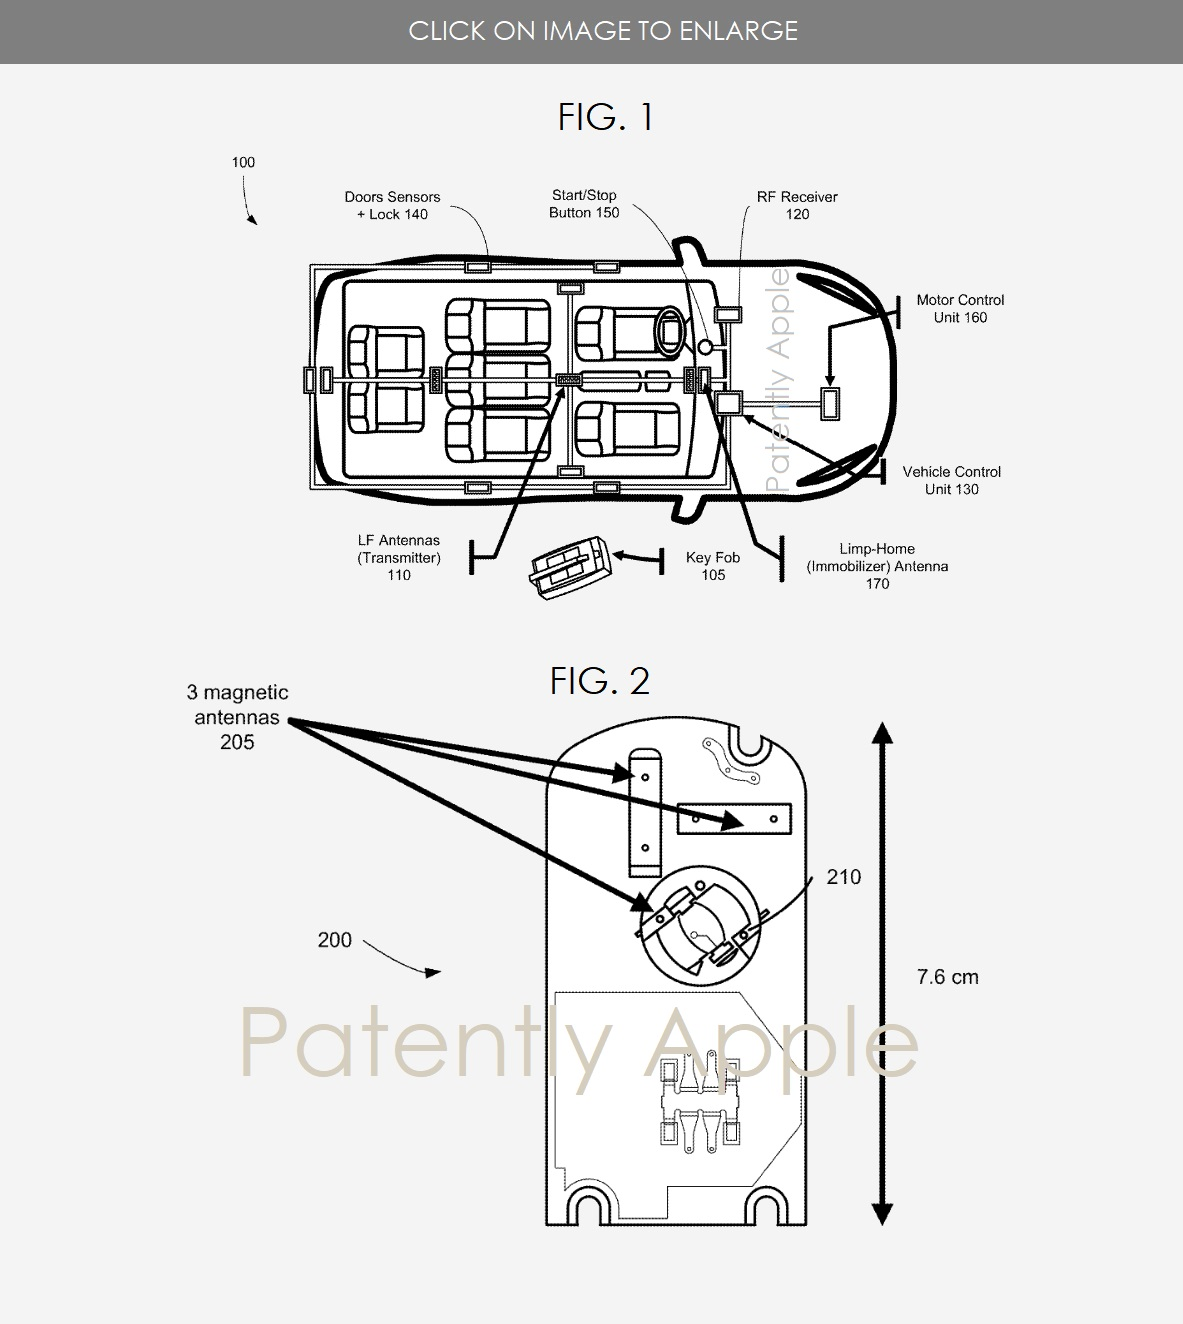 Apple Invents an Enhanced Automotive Pive Entry System ... on computer schematic, water pump schematic, battery schematic, flashlight schematic, door schematic, engine schematic, car schematic, remote start schematic, radio schematic, cell phone schematic,